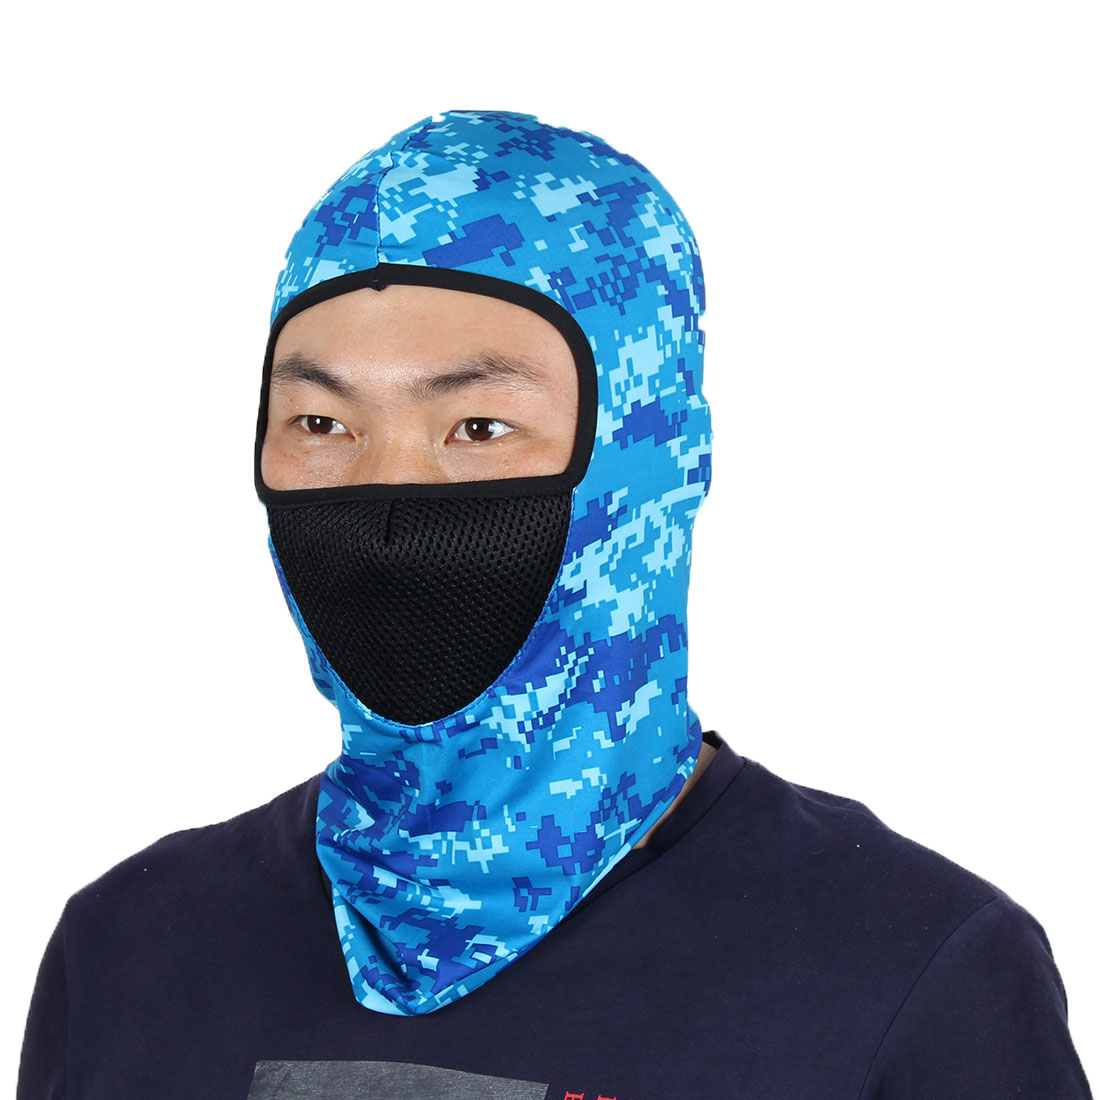 Full Face Mask Warm Cycling Neck Protector Hat Helmet Balaclava Camouflage by Unique-Bargains